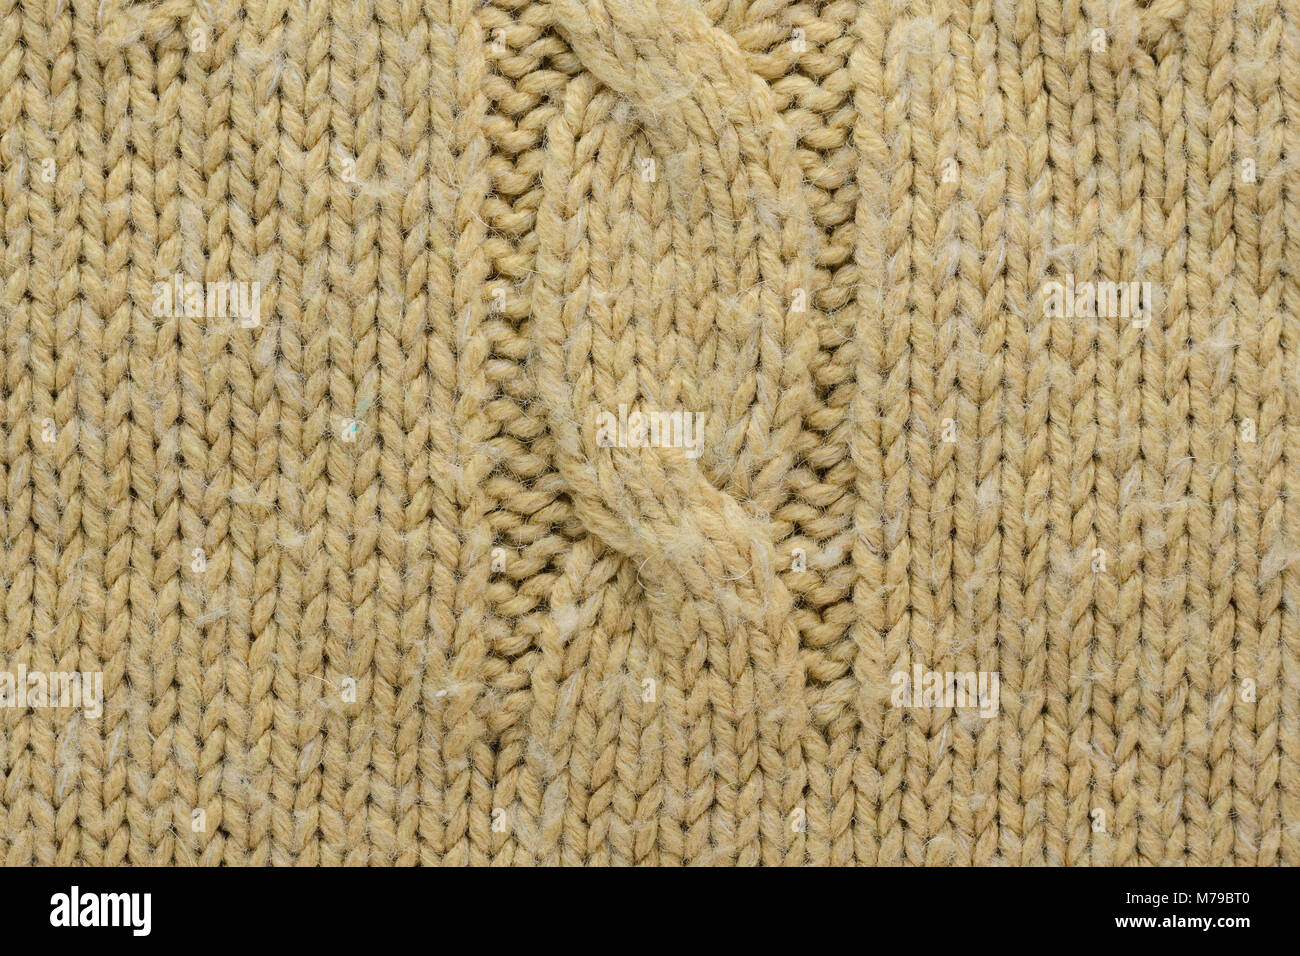 4193e7d3968 Knit Texture of Beige Wool Knitted Sweater with Cable Knits Pattern. -  Stock Image